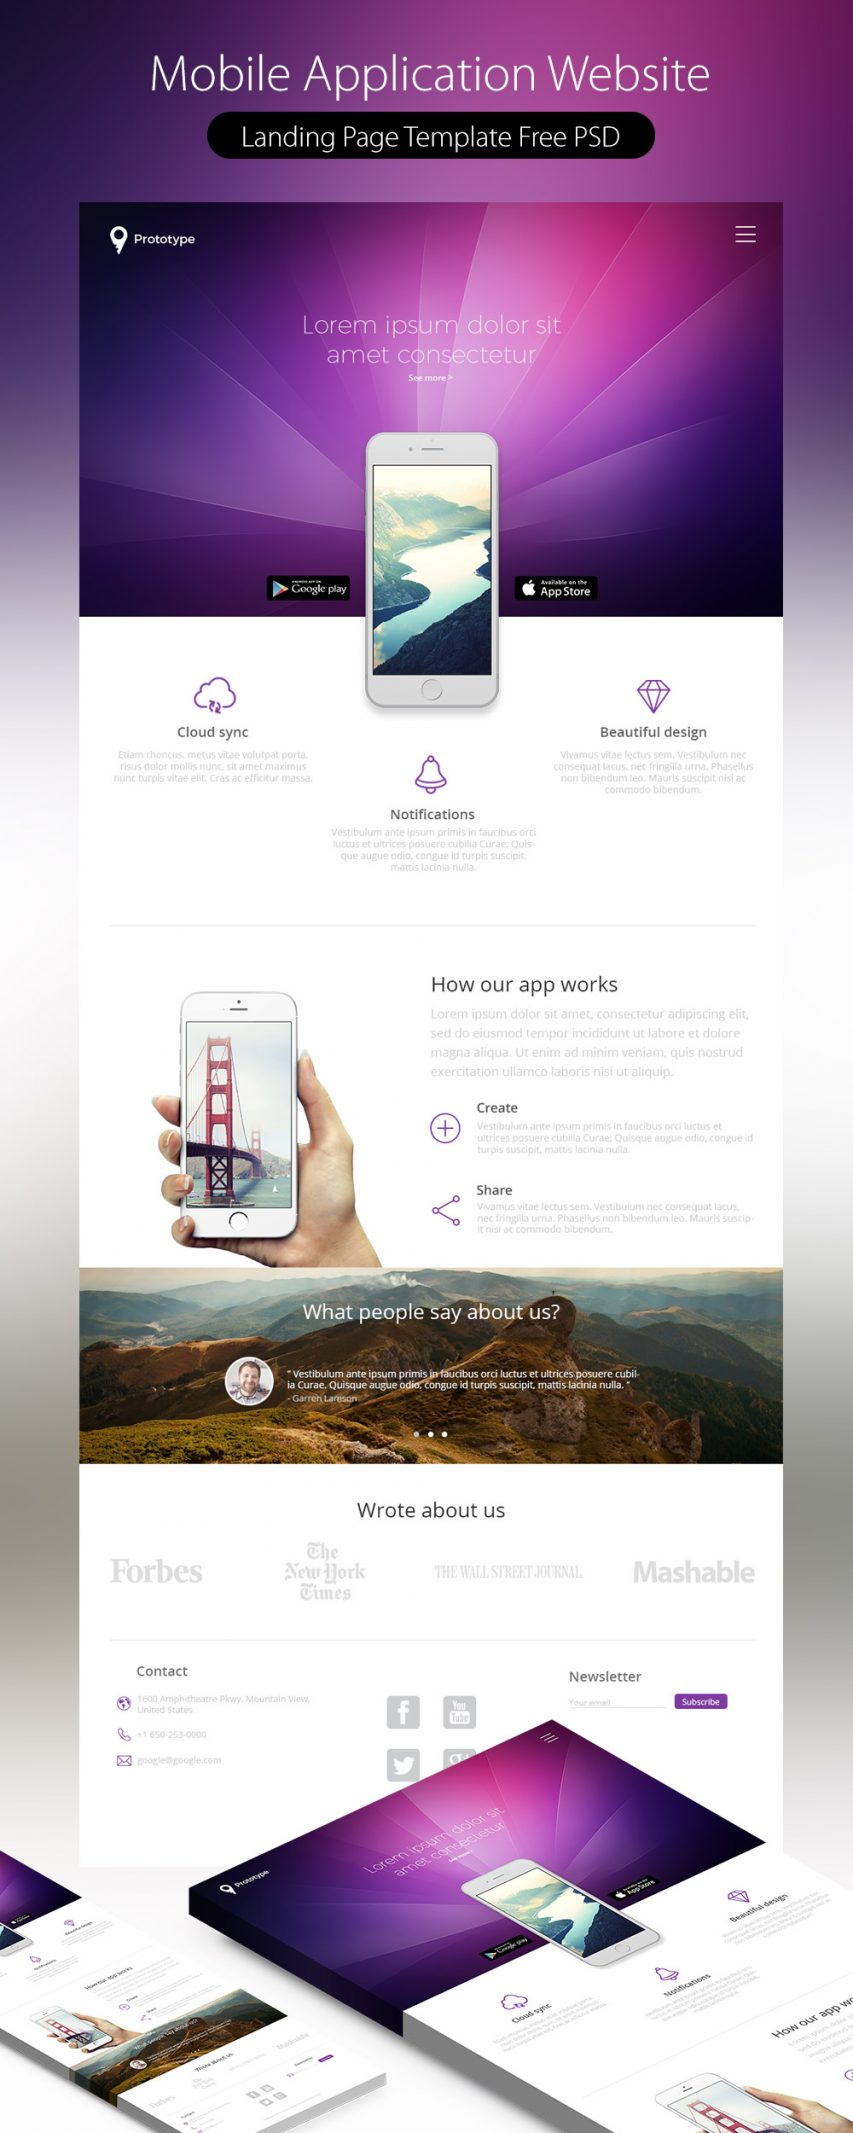 Free Mobile Application Landing Page Template Free Psd At Freepsd